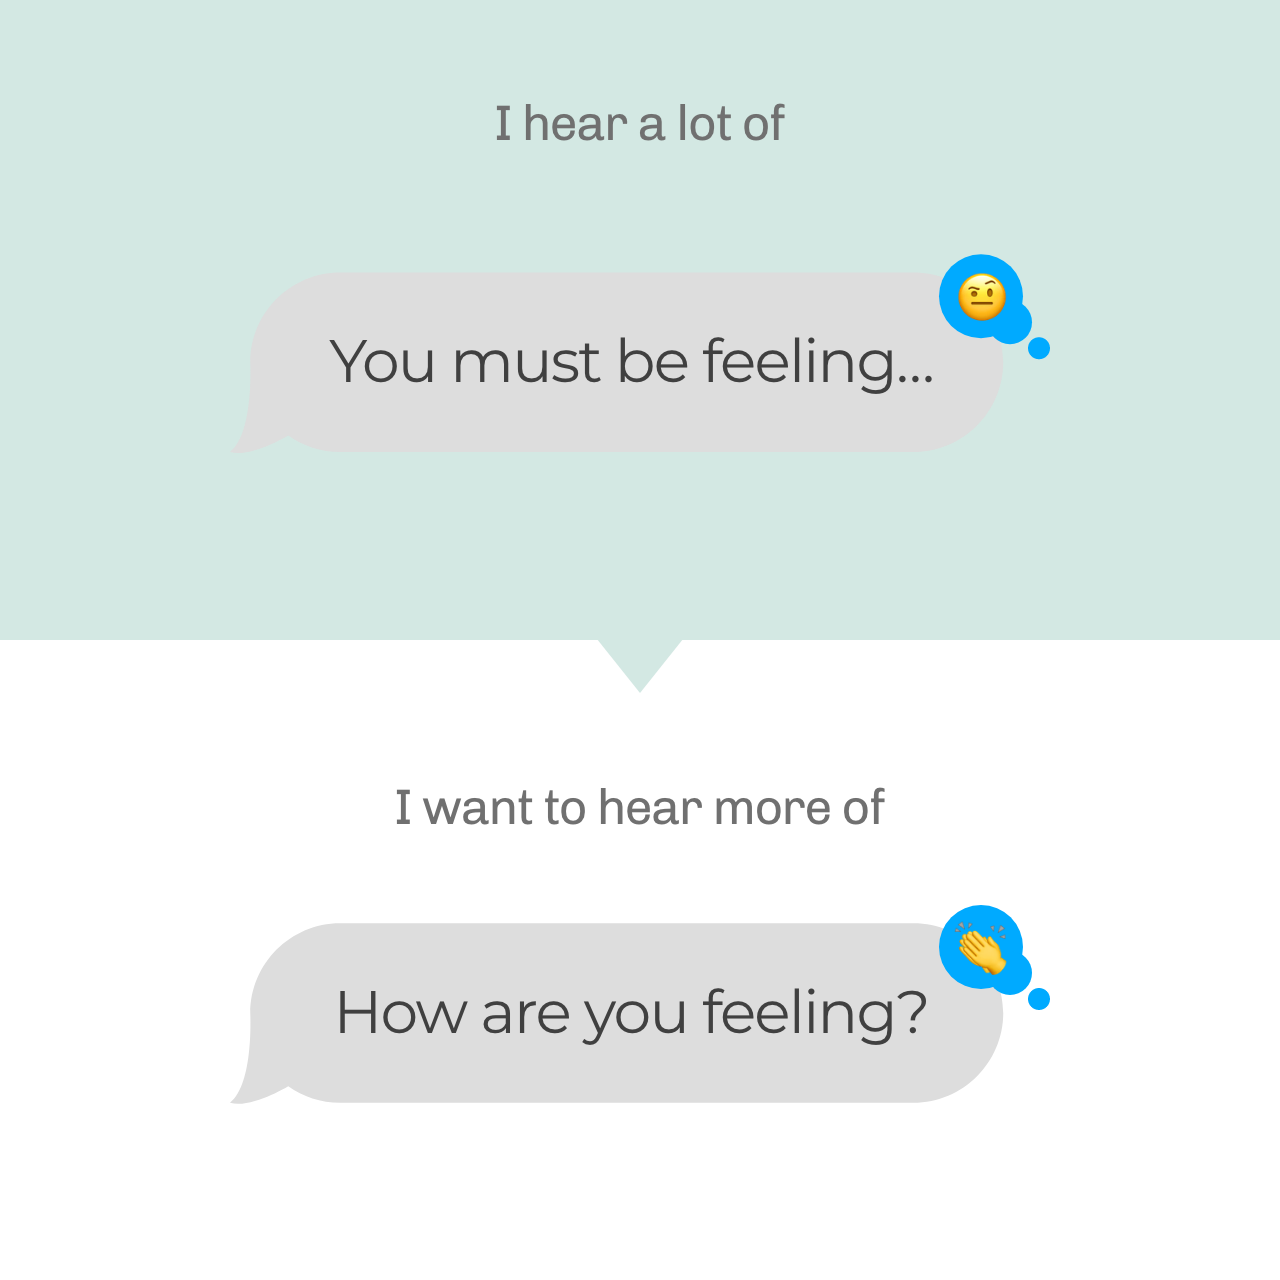 """An image of a text message conversation. The first message says """"You must be feeling..."""" and an unimpressed emoji face. The second says, """"How are you feeling?"""" with a clapping hand emoji. This illustrates how to frame your conversation in a more constructive way"""